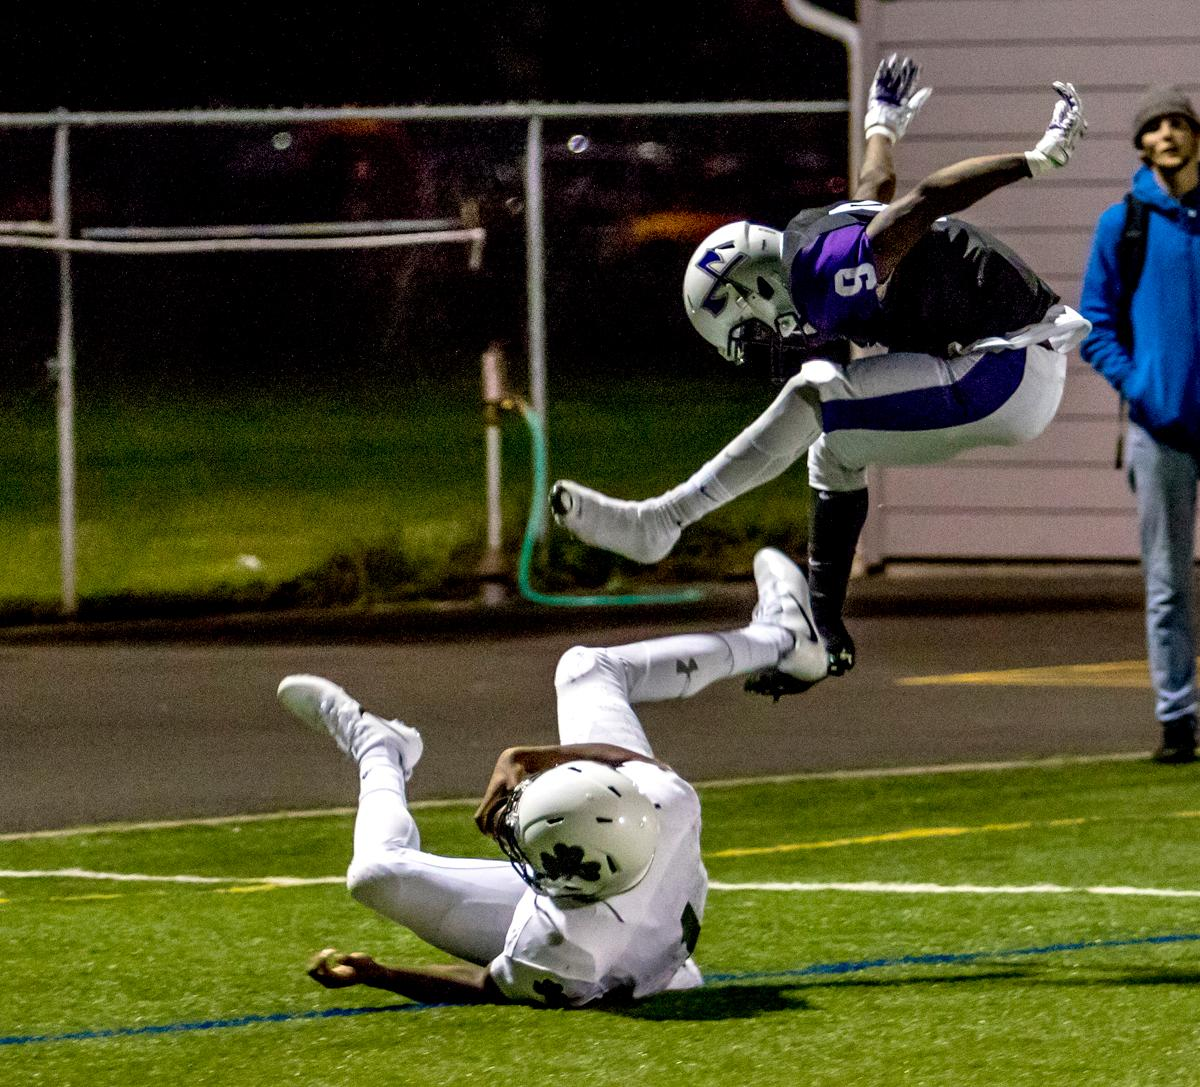 South Eugene's Kelon Logan (#6) jumps over a Sheldon player. Sheldon defeated South 63-6 at South Eugene on Friday. Photo by August Frank, Oregon News Lab